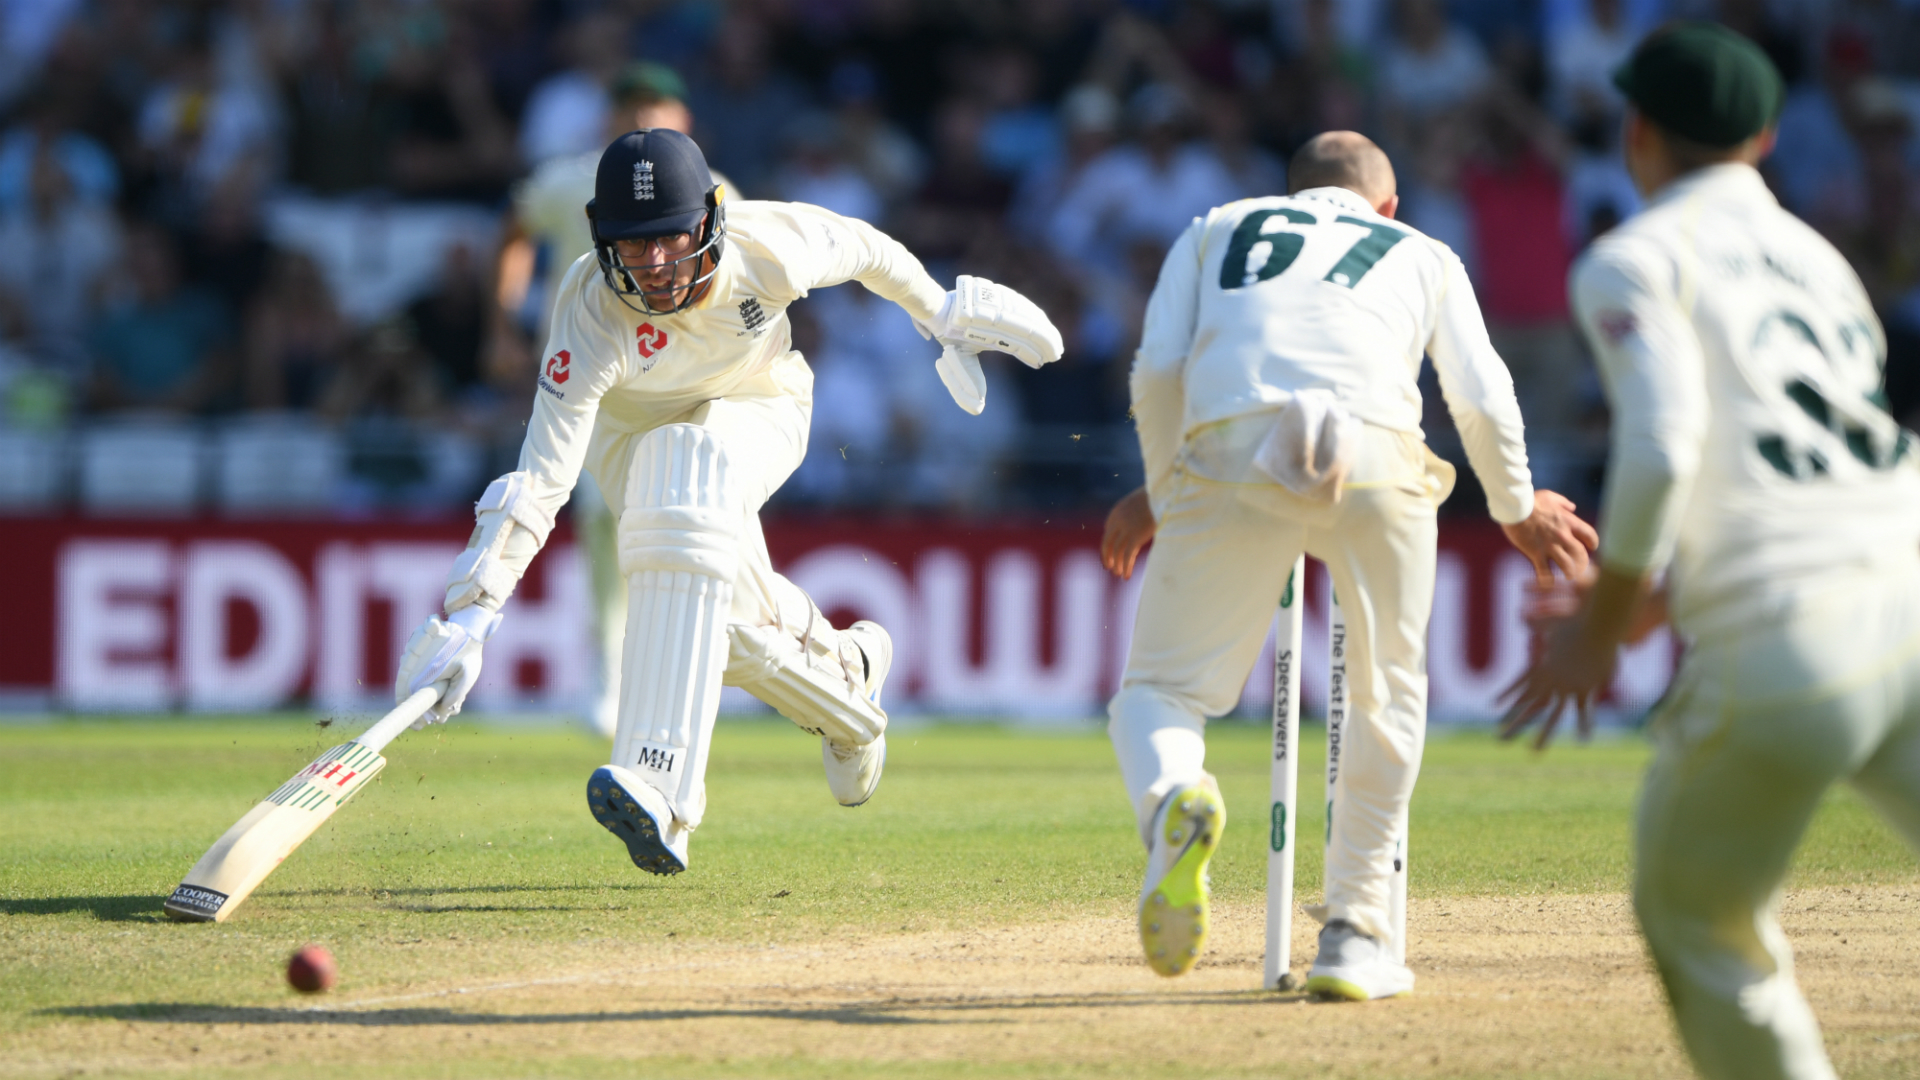 Ashes 2019: Specsavers answer Ben Stokes' plea to provide England's Jack Leach 'free glasses for life'